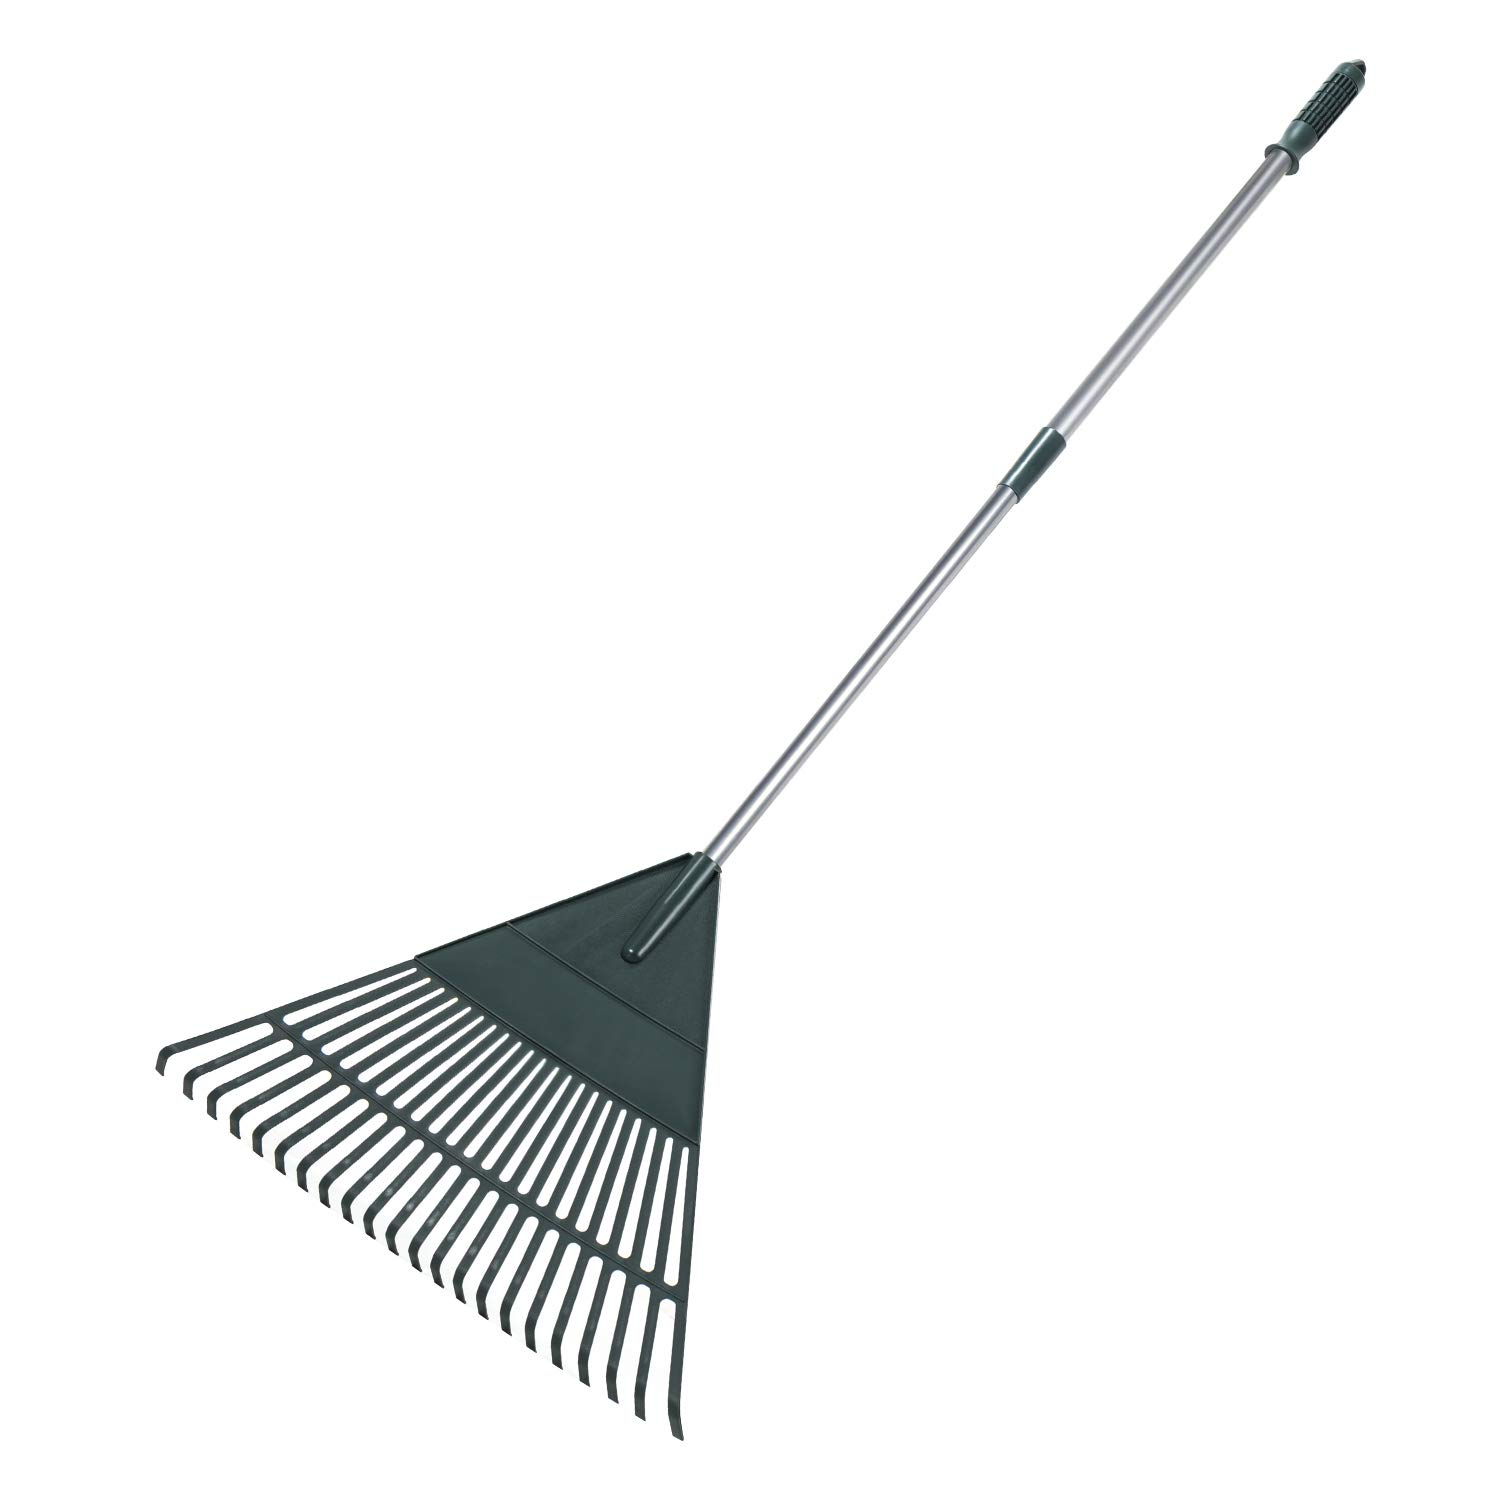 ORIENTOOLS Garden Leaf Rake, Adjustable Lightweight Steel Handle Poly Shrub Rake, Plastic Head, 22 Tines, 42 to 60 Inches (Silver Handle)